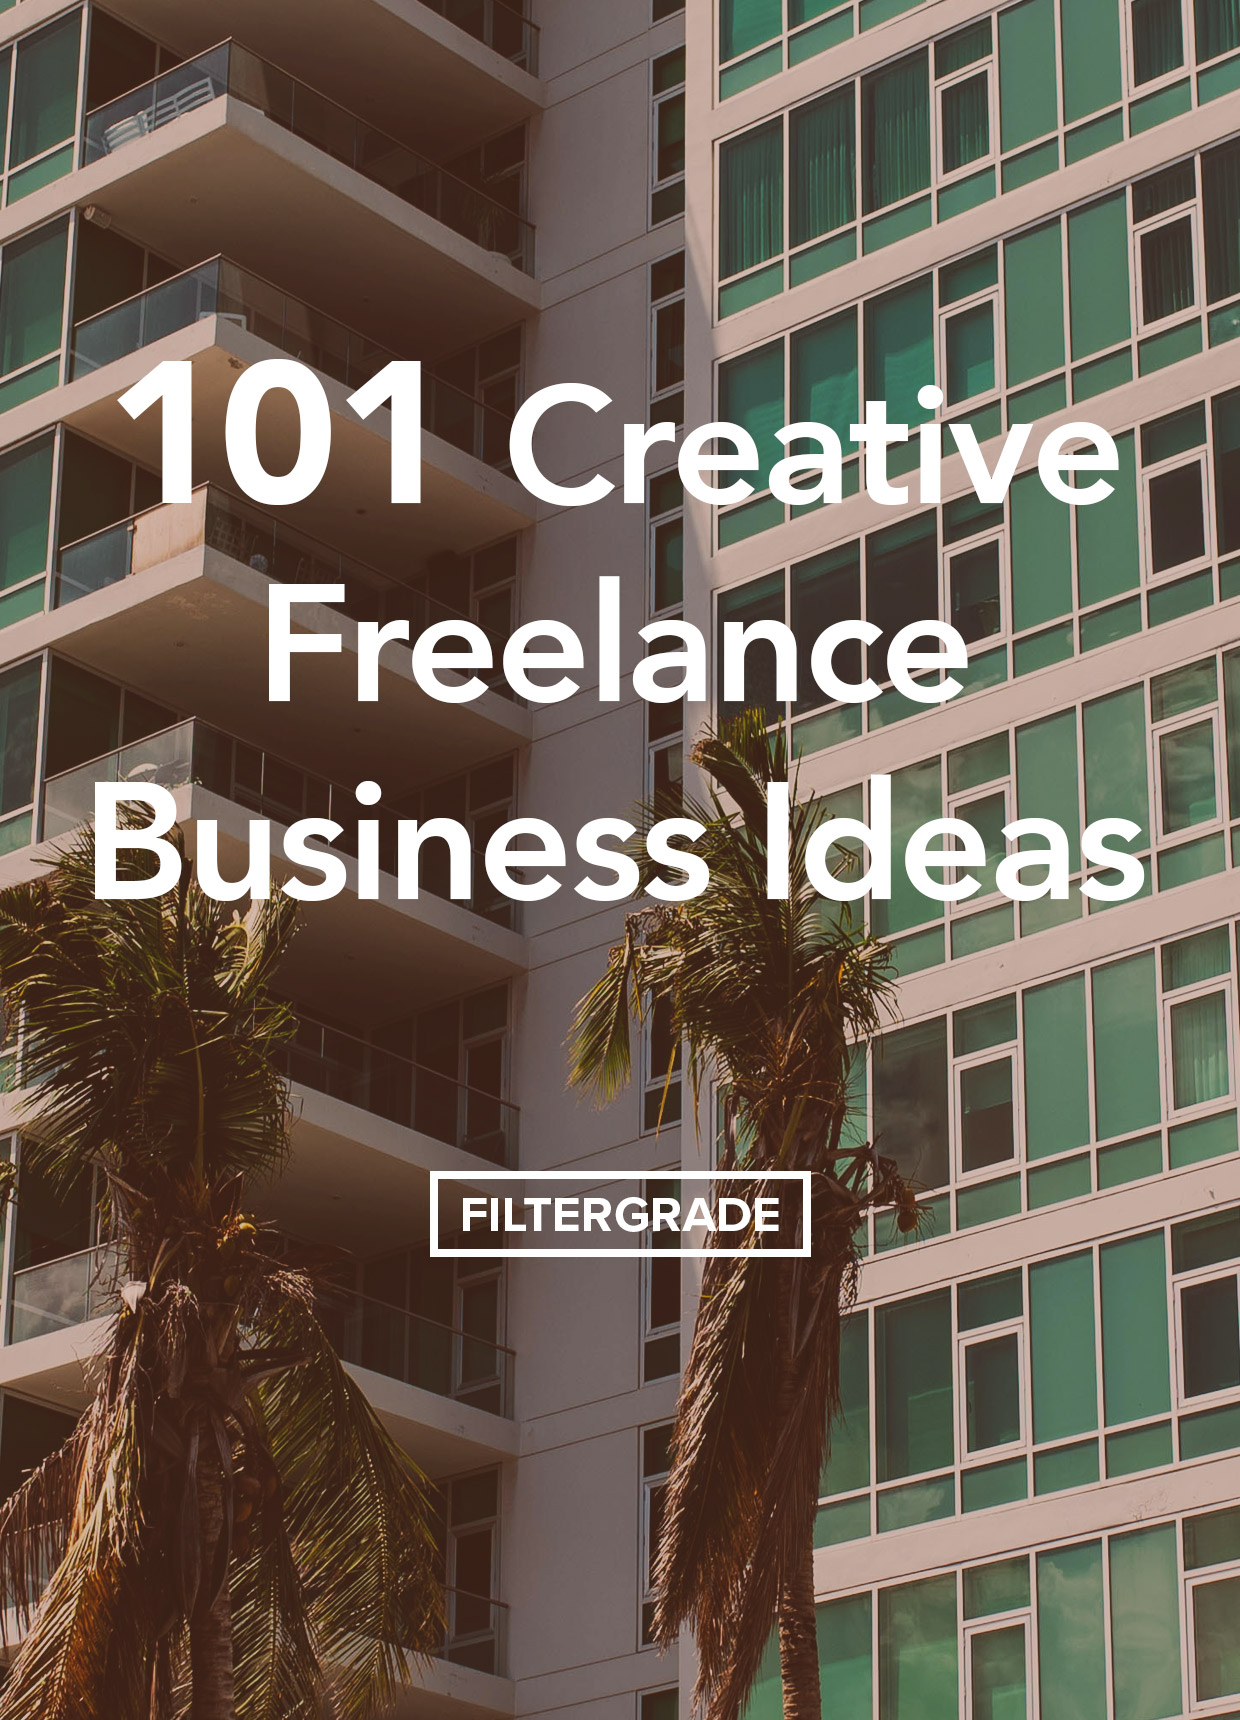 101 Freelance Business Ideas for Creative People!